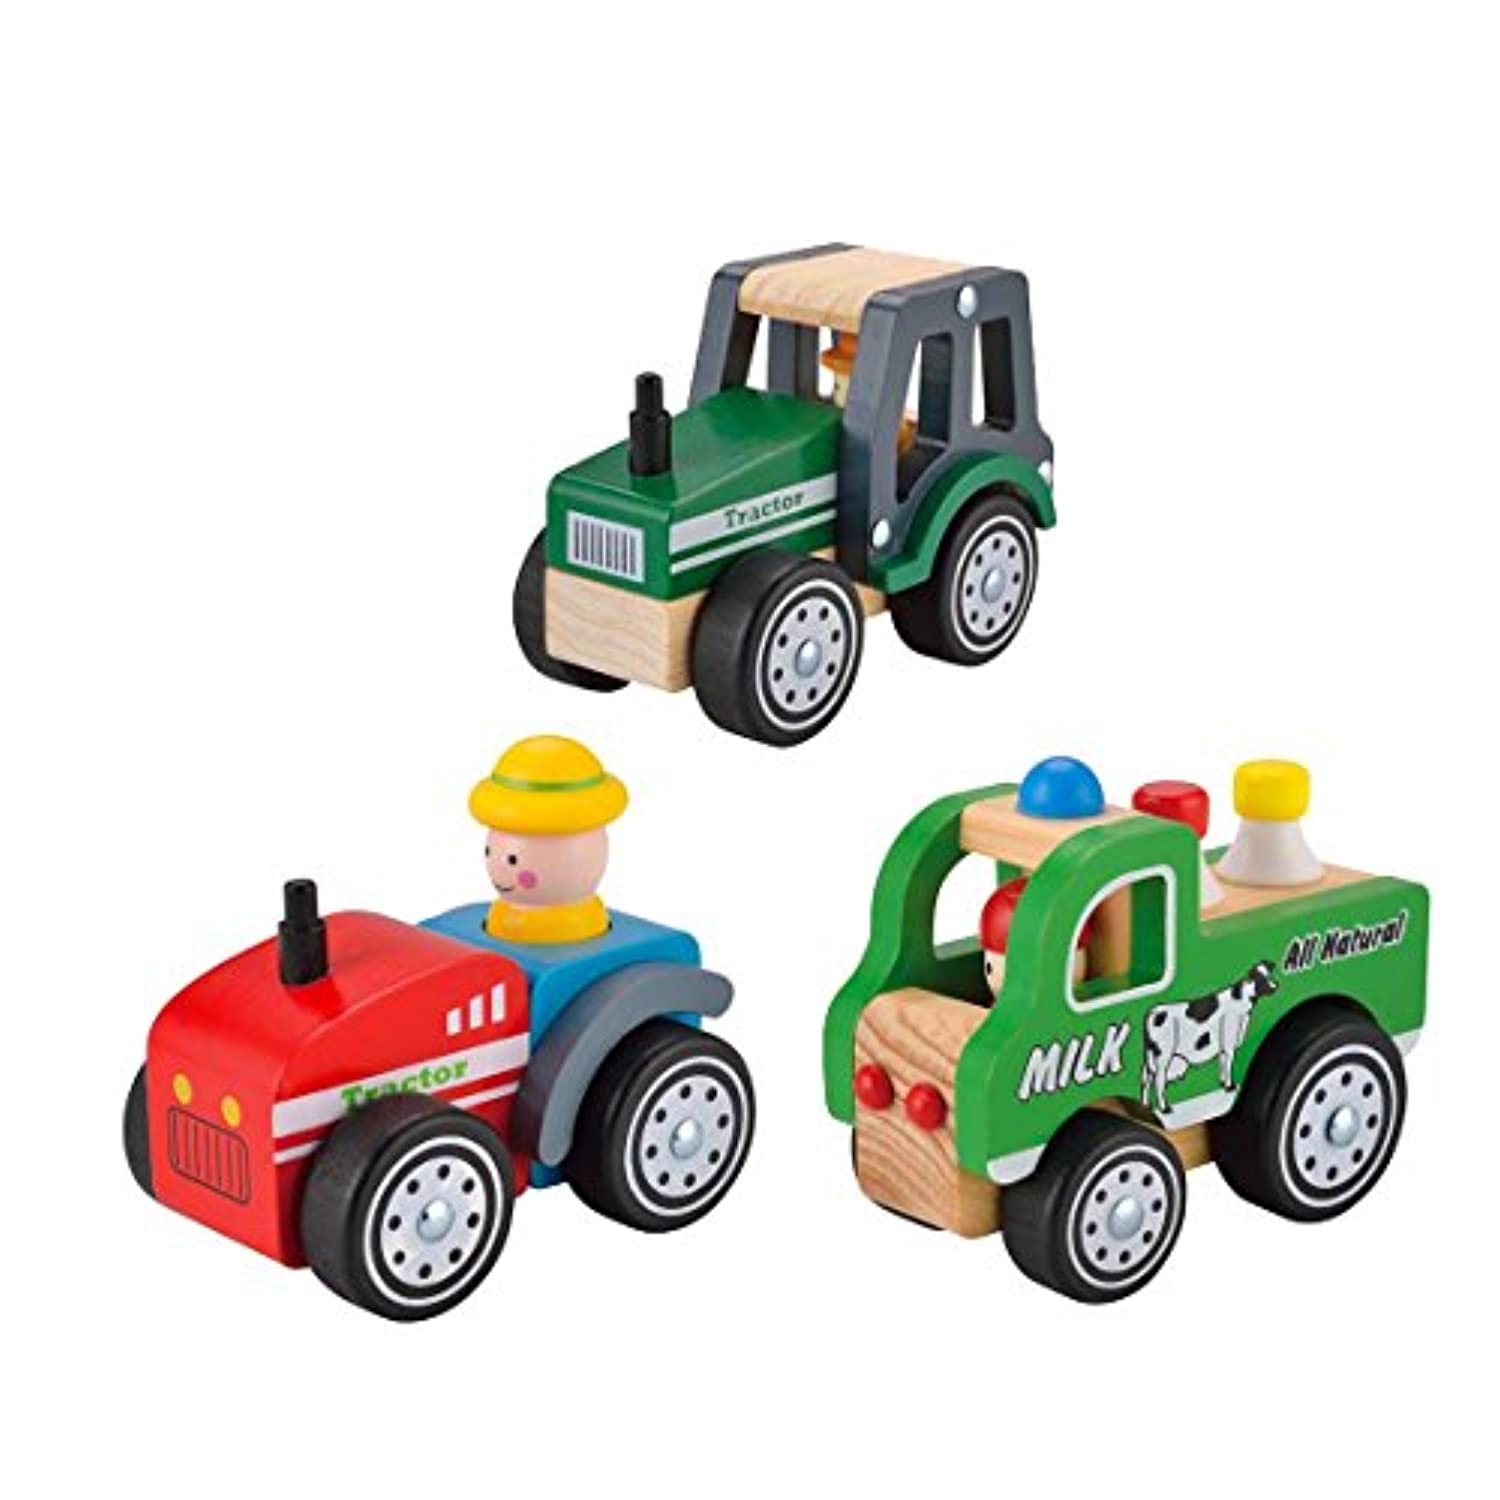 Wooden Kid's Farm Toy Vehicles Play Set of Toy Green Tractor+Toy Milk Car+Toy Red Tractor (3 Assistant Farm Car) By KIDS TOYLAND